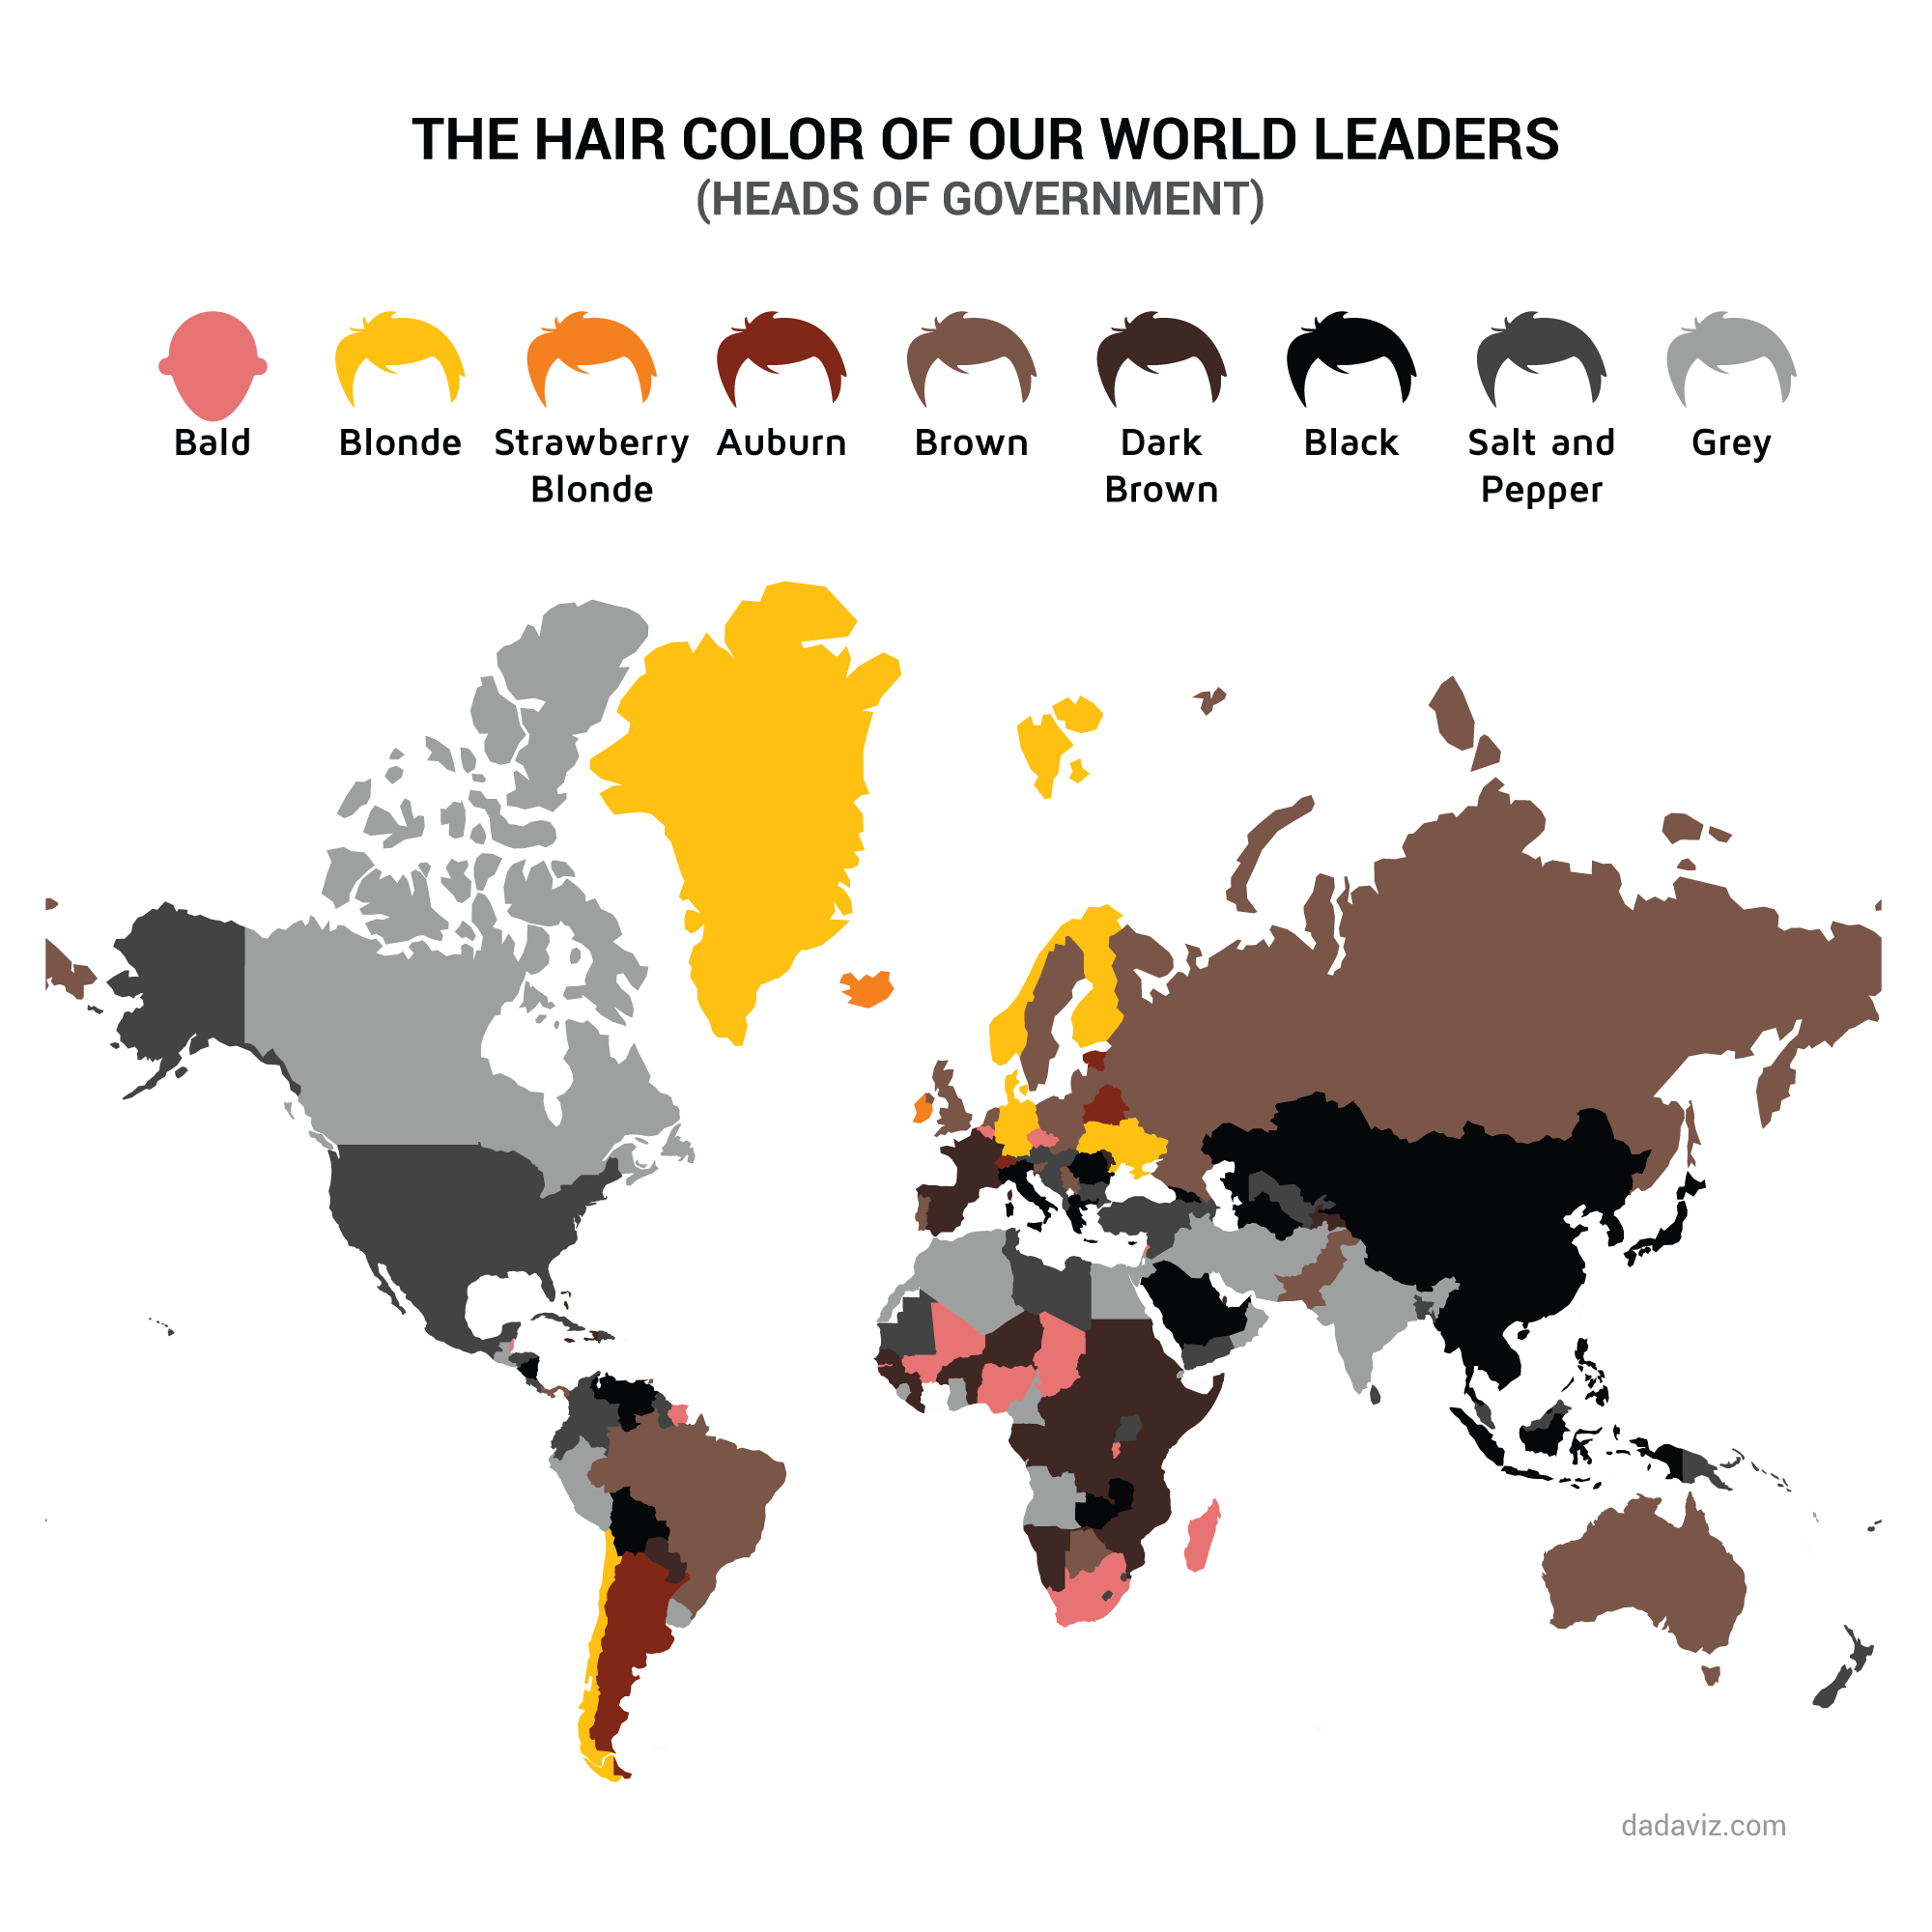 The Hair Color Of Our Leaders Data Visualisation by